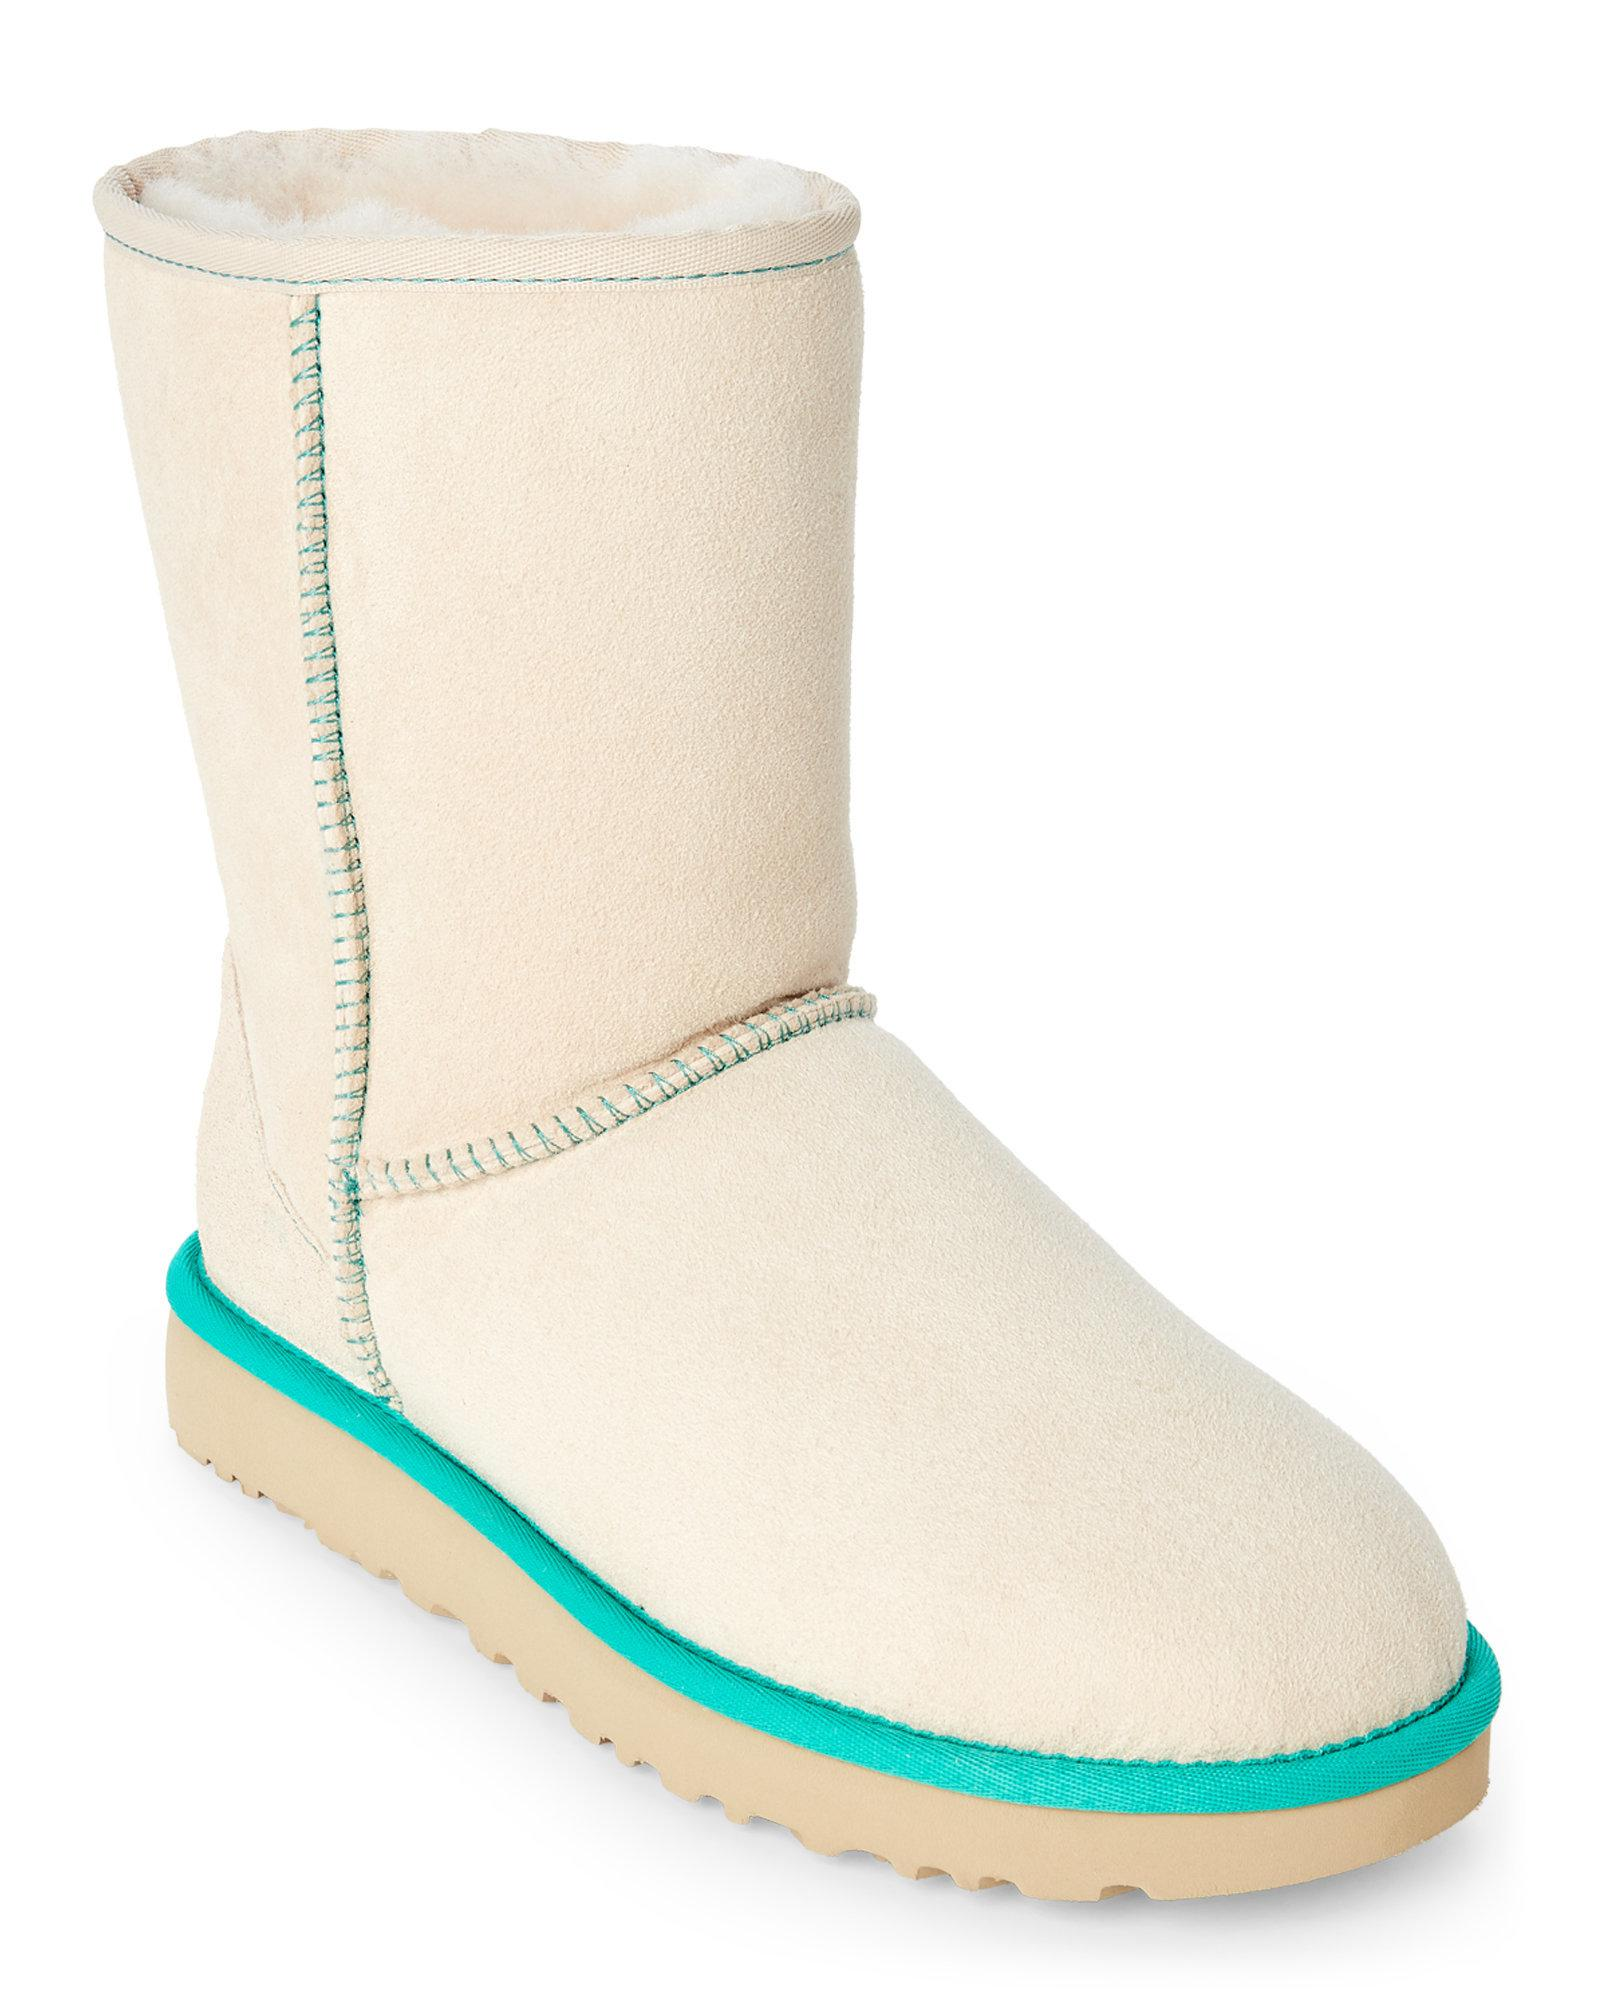 ee59d0b70c7 Ugg Natural Canvas & Turquoise Neon Ii Classic Short Shearling Boots